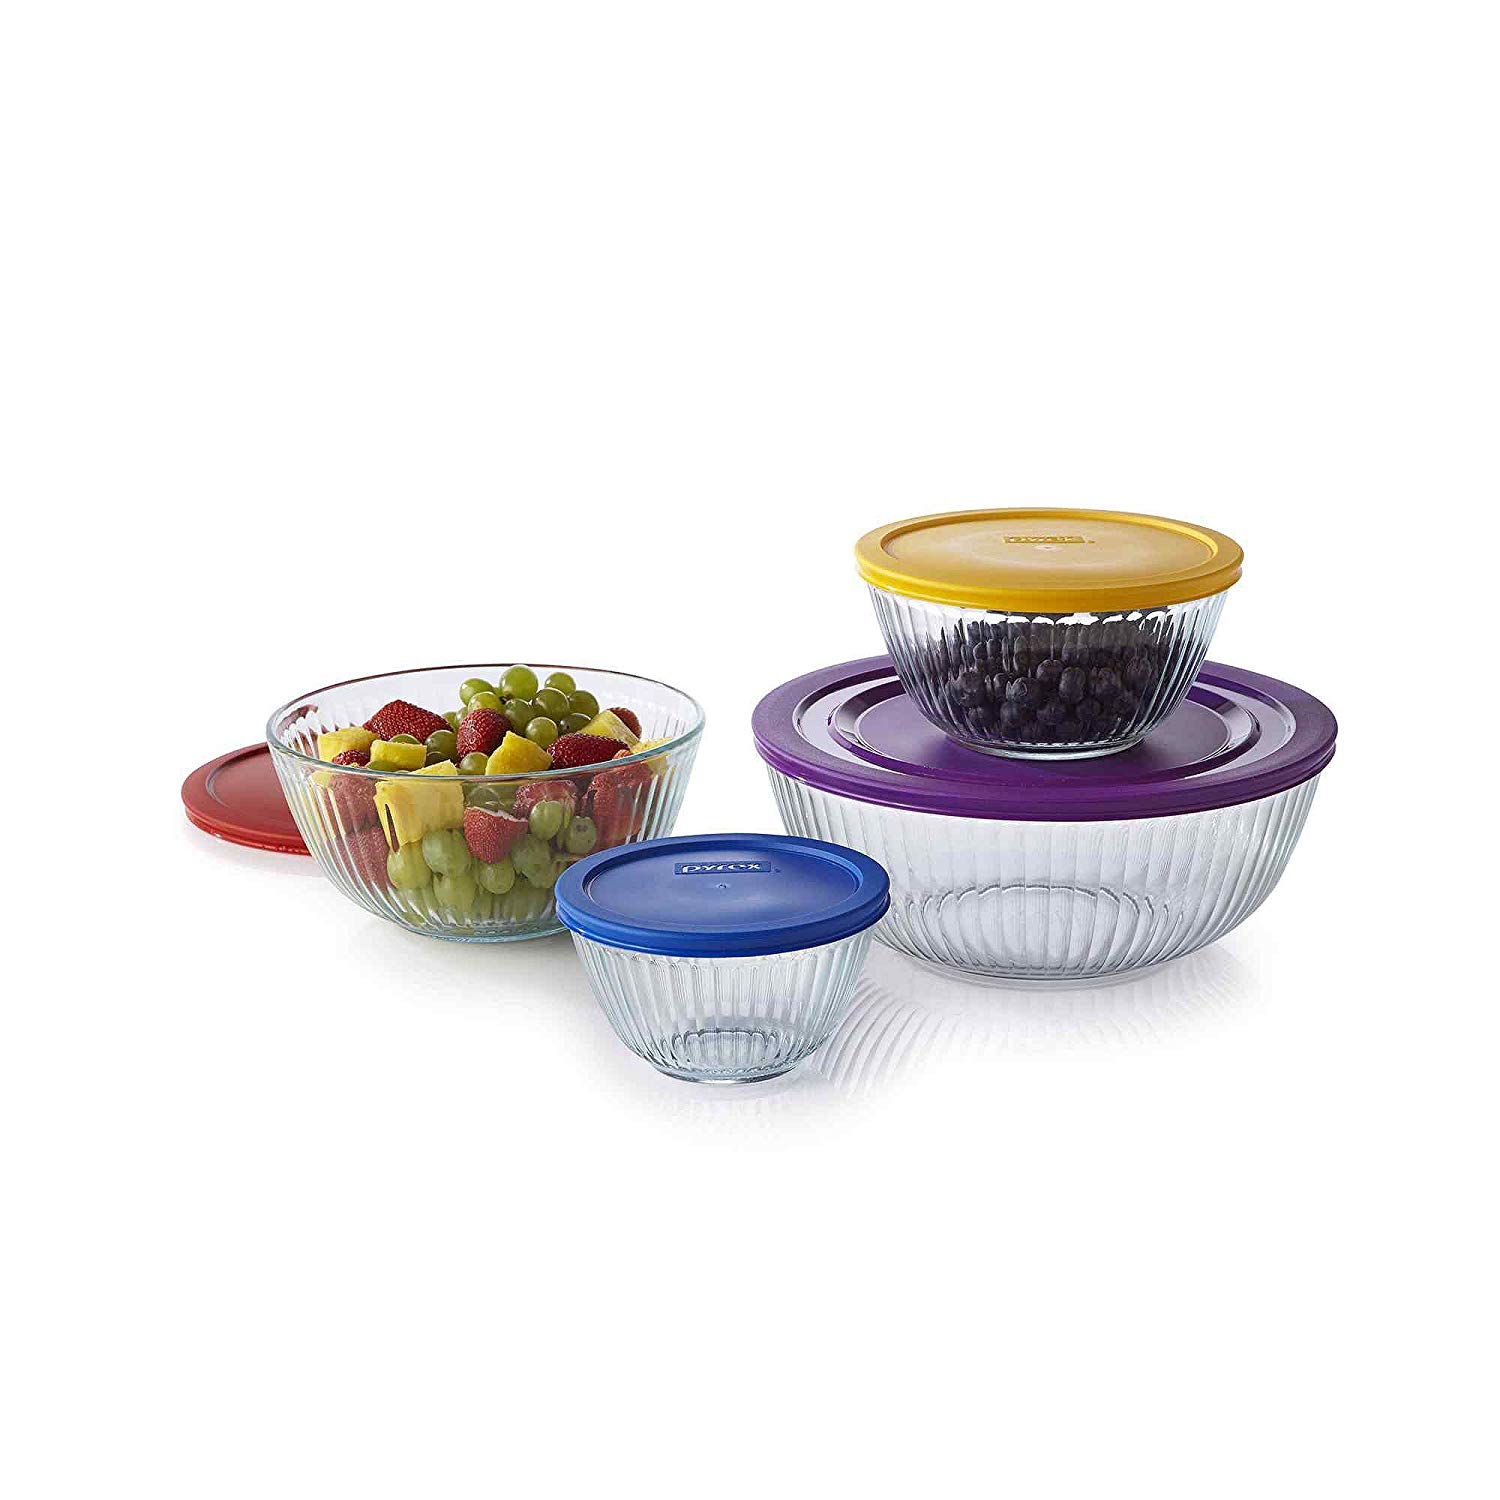 Pyrex 8-Piece Sculptured Mixing Bowl Set